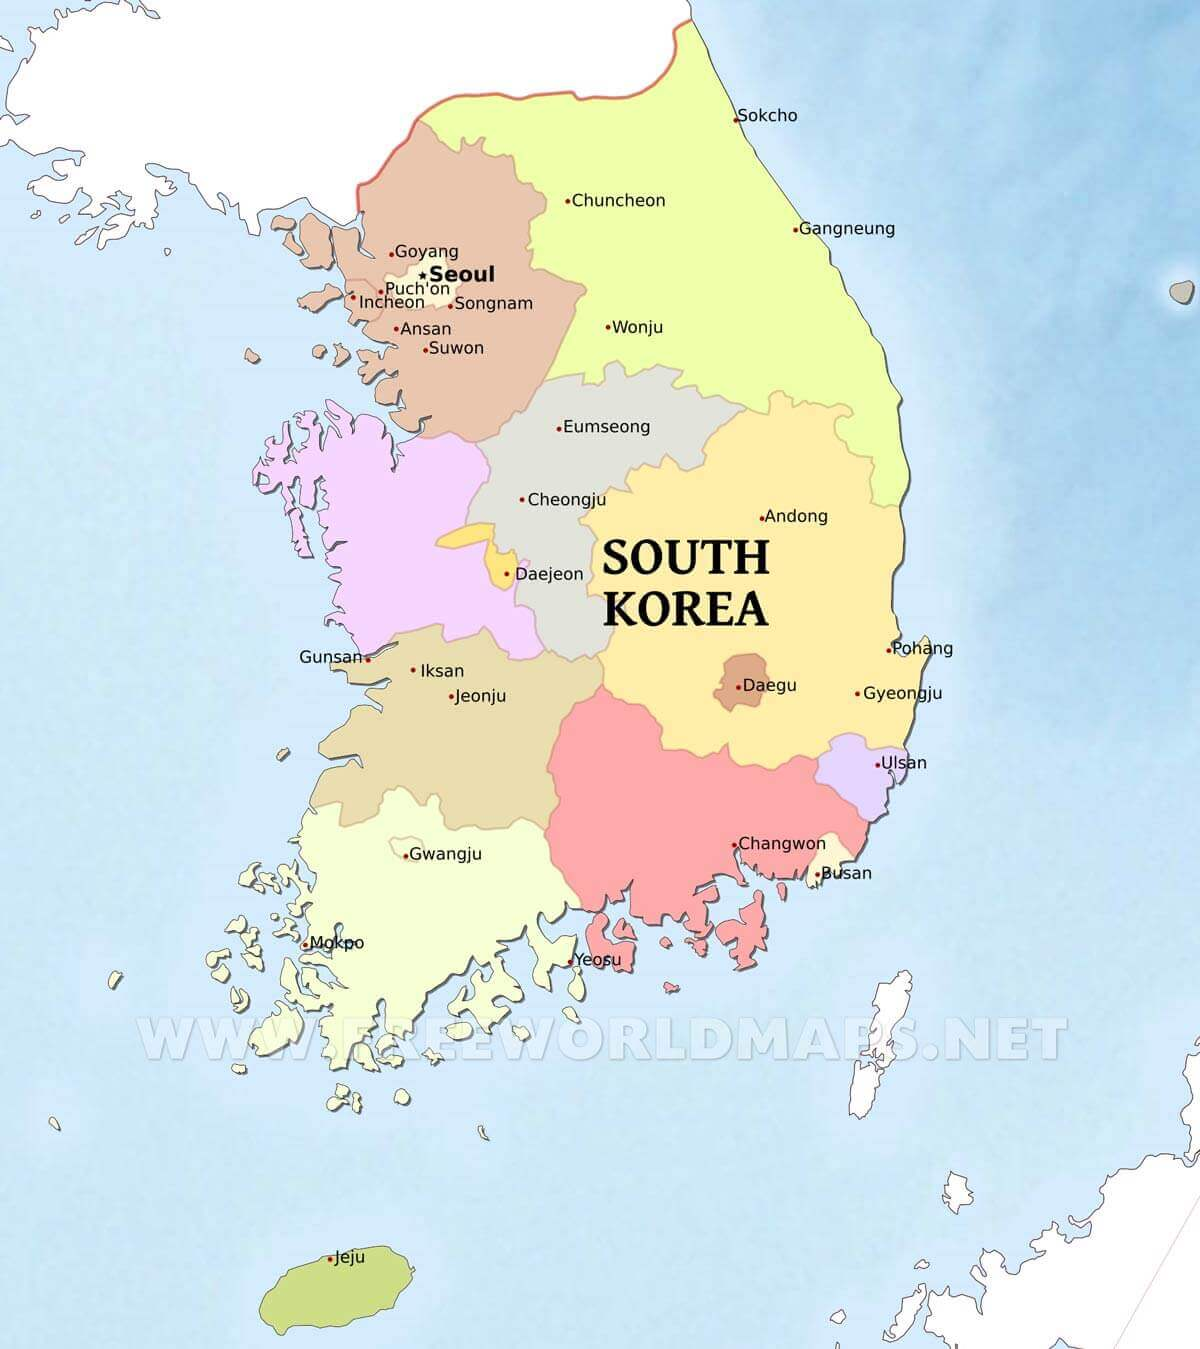 South Korea Maps on seoul map, euro countries map, wwii map, formosa map, hong kong map, russia map, china map, united states map, europe map, asia map, camp humphreys map, persia map, ireland map, rwanda map, usa map, korean war map, korean peninsula map, iran map, japan map,